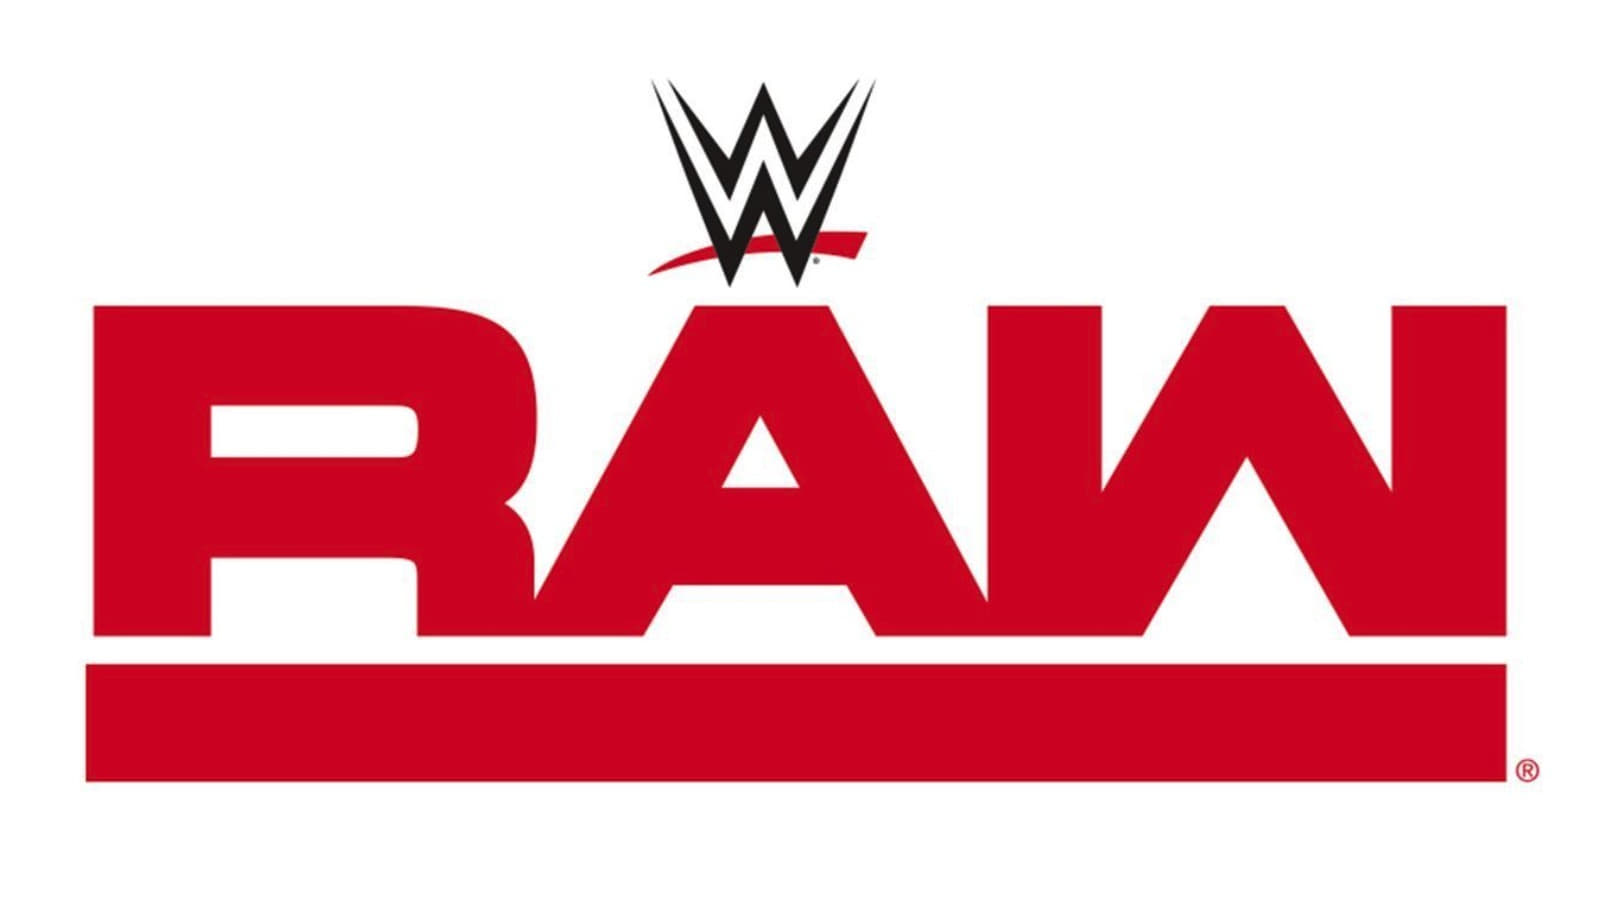 WWE Raw - Season 22 Episode 28 : July 14, 2014 (Richmond, VA)